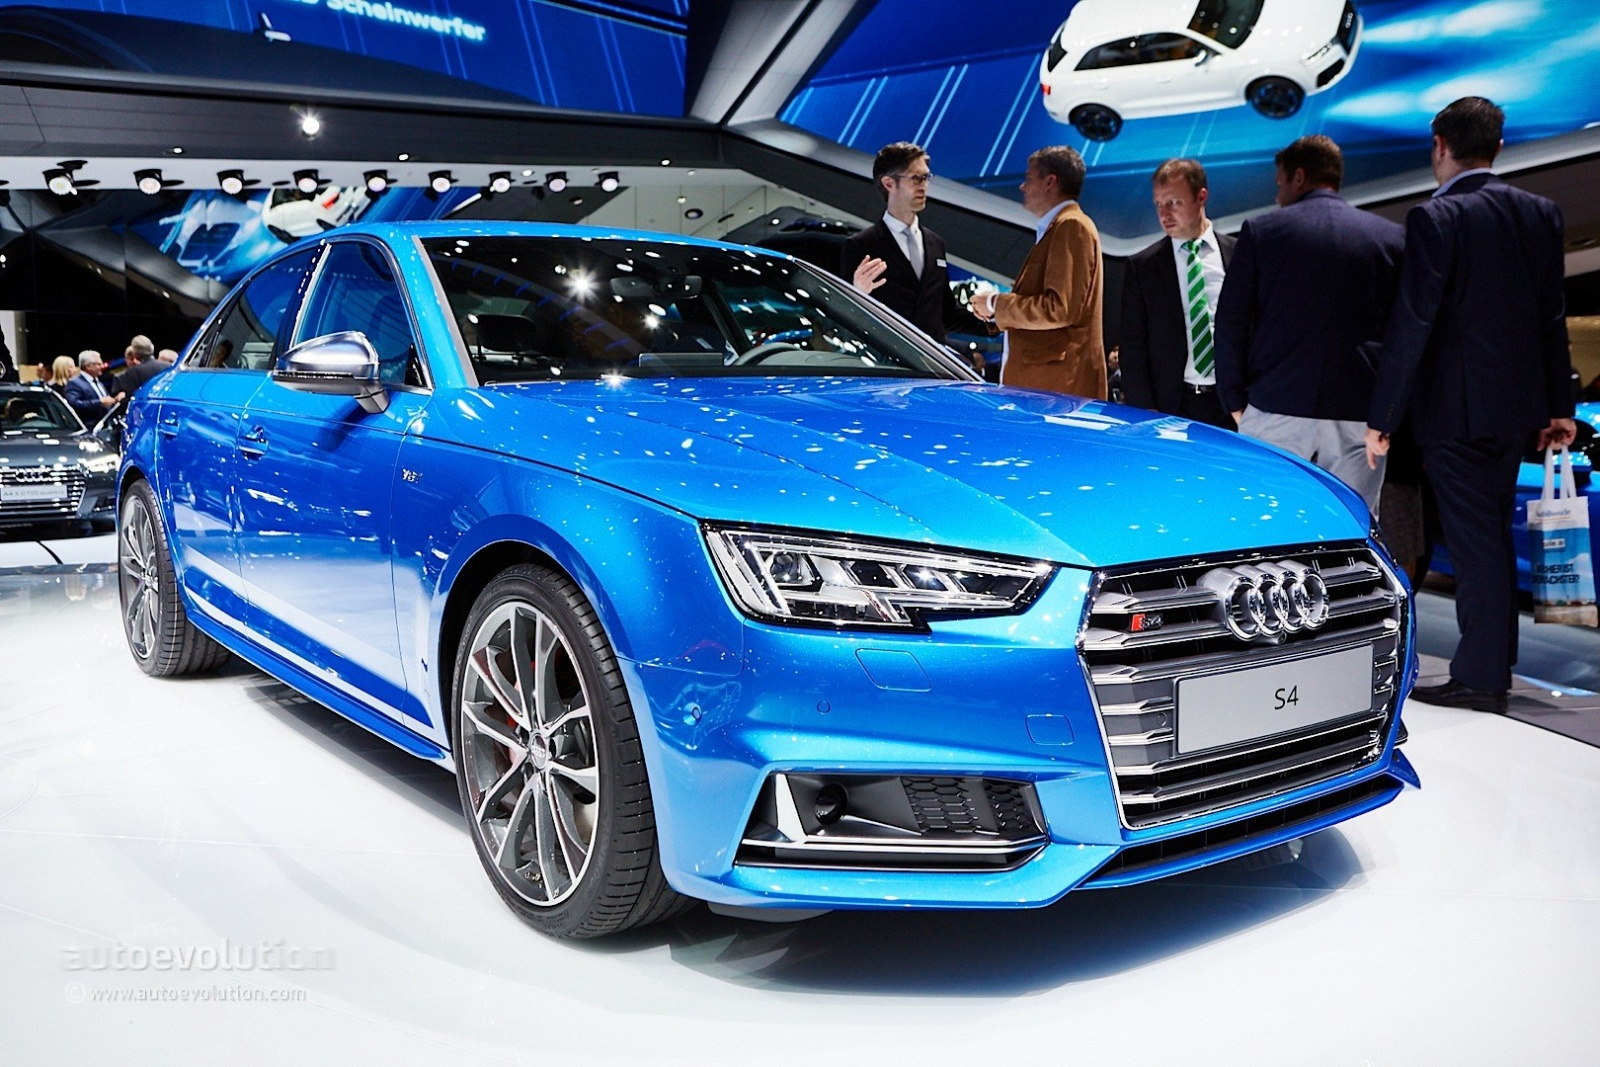 all-new-audi-s4-sedan-debuts-with-3-liter-turbocharged-engine-in-frankfurt-live-photos_1